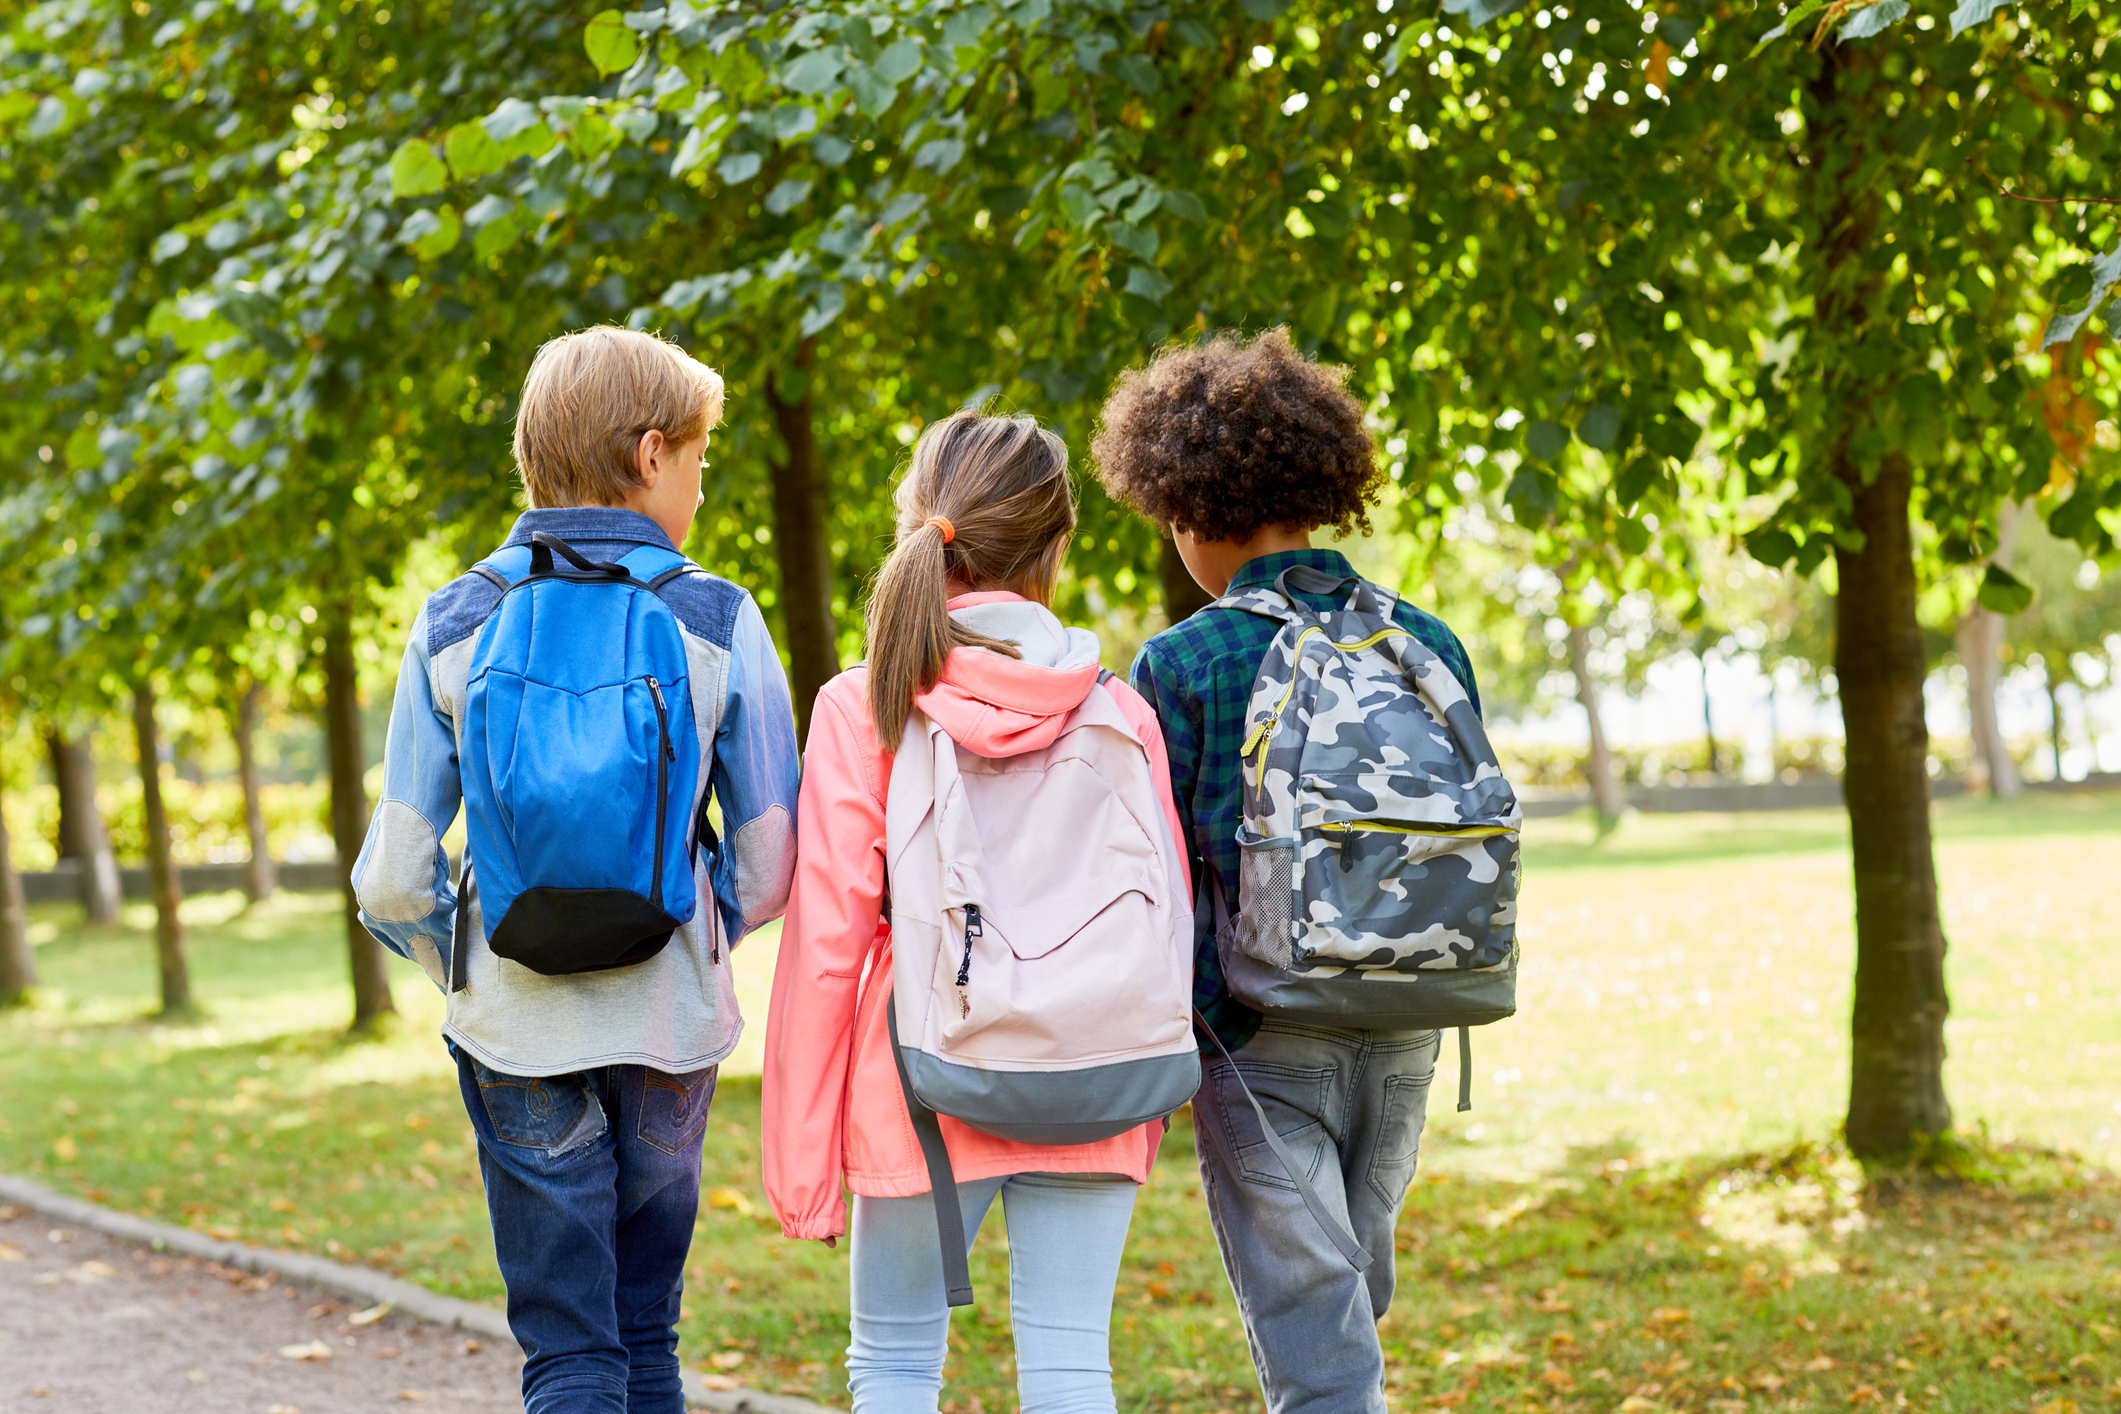 Shop the Best Back to School Guide in Southlake at Shops of Southlake